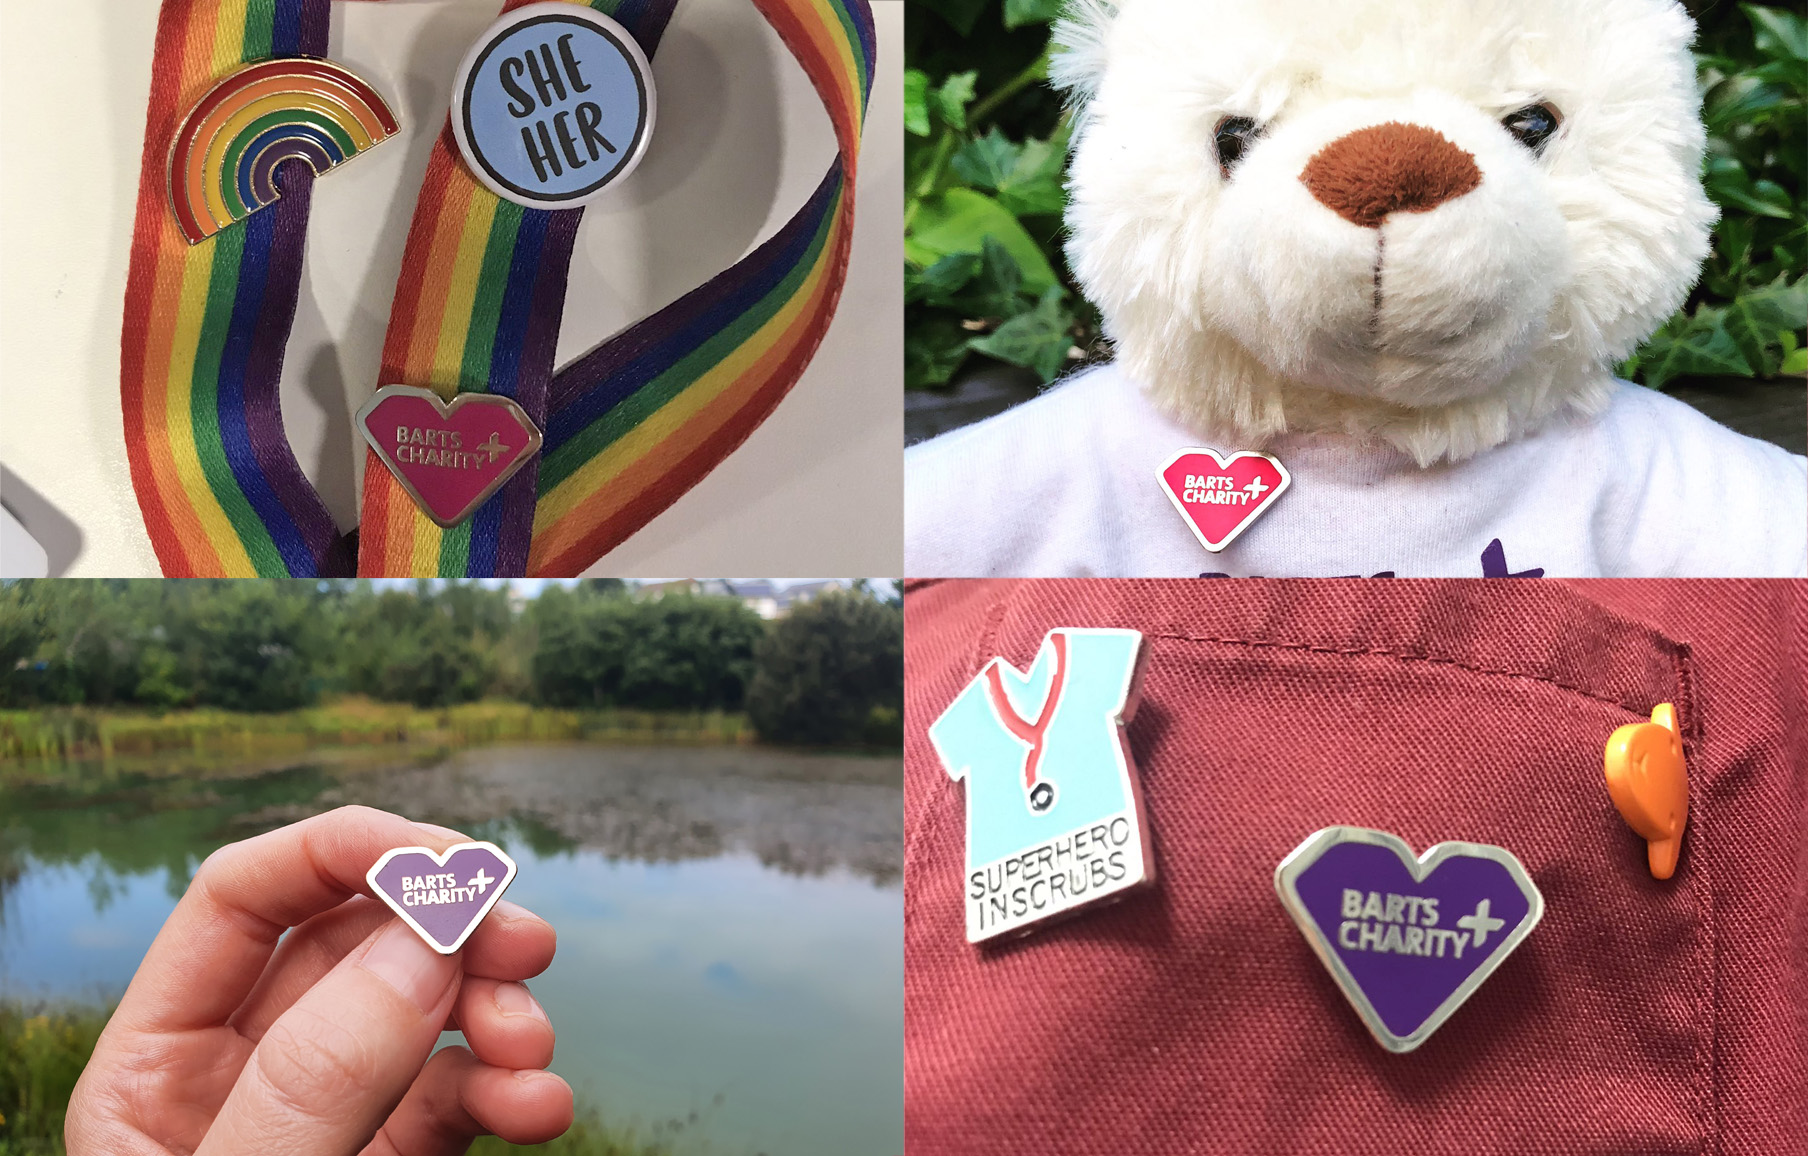 barts charity badge competition